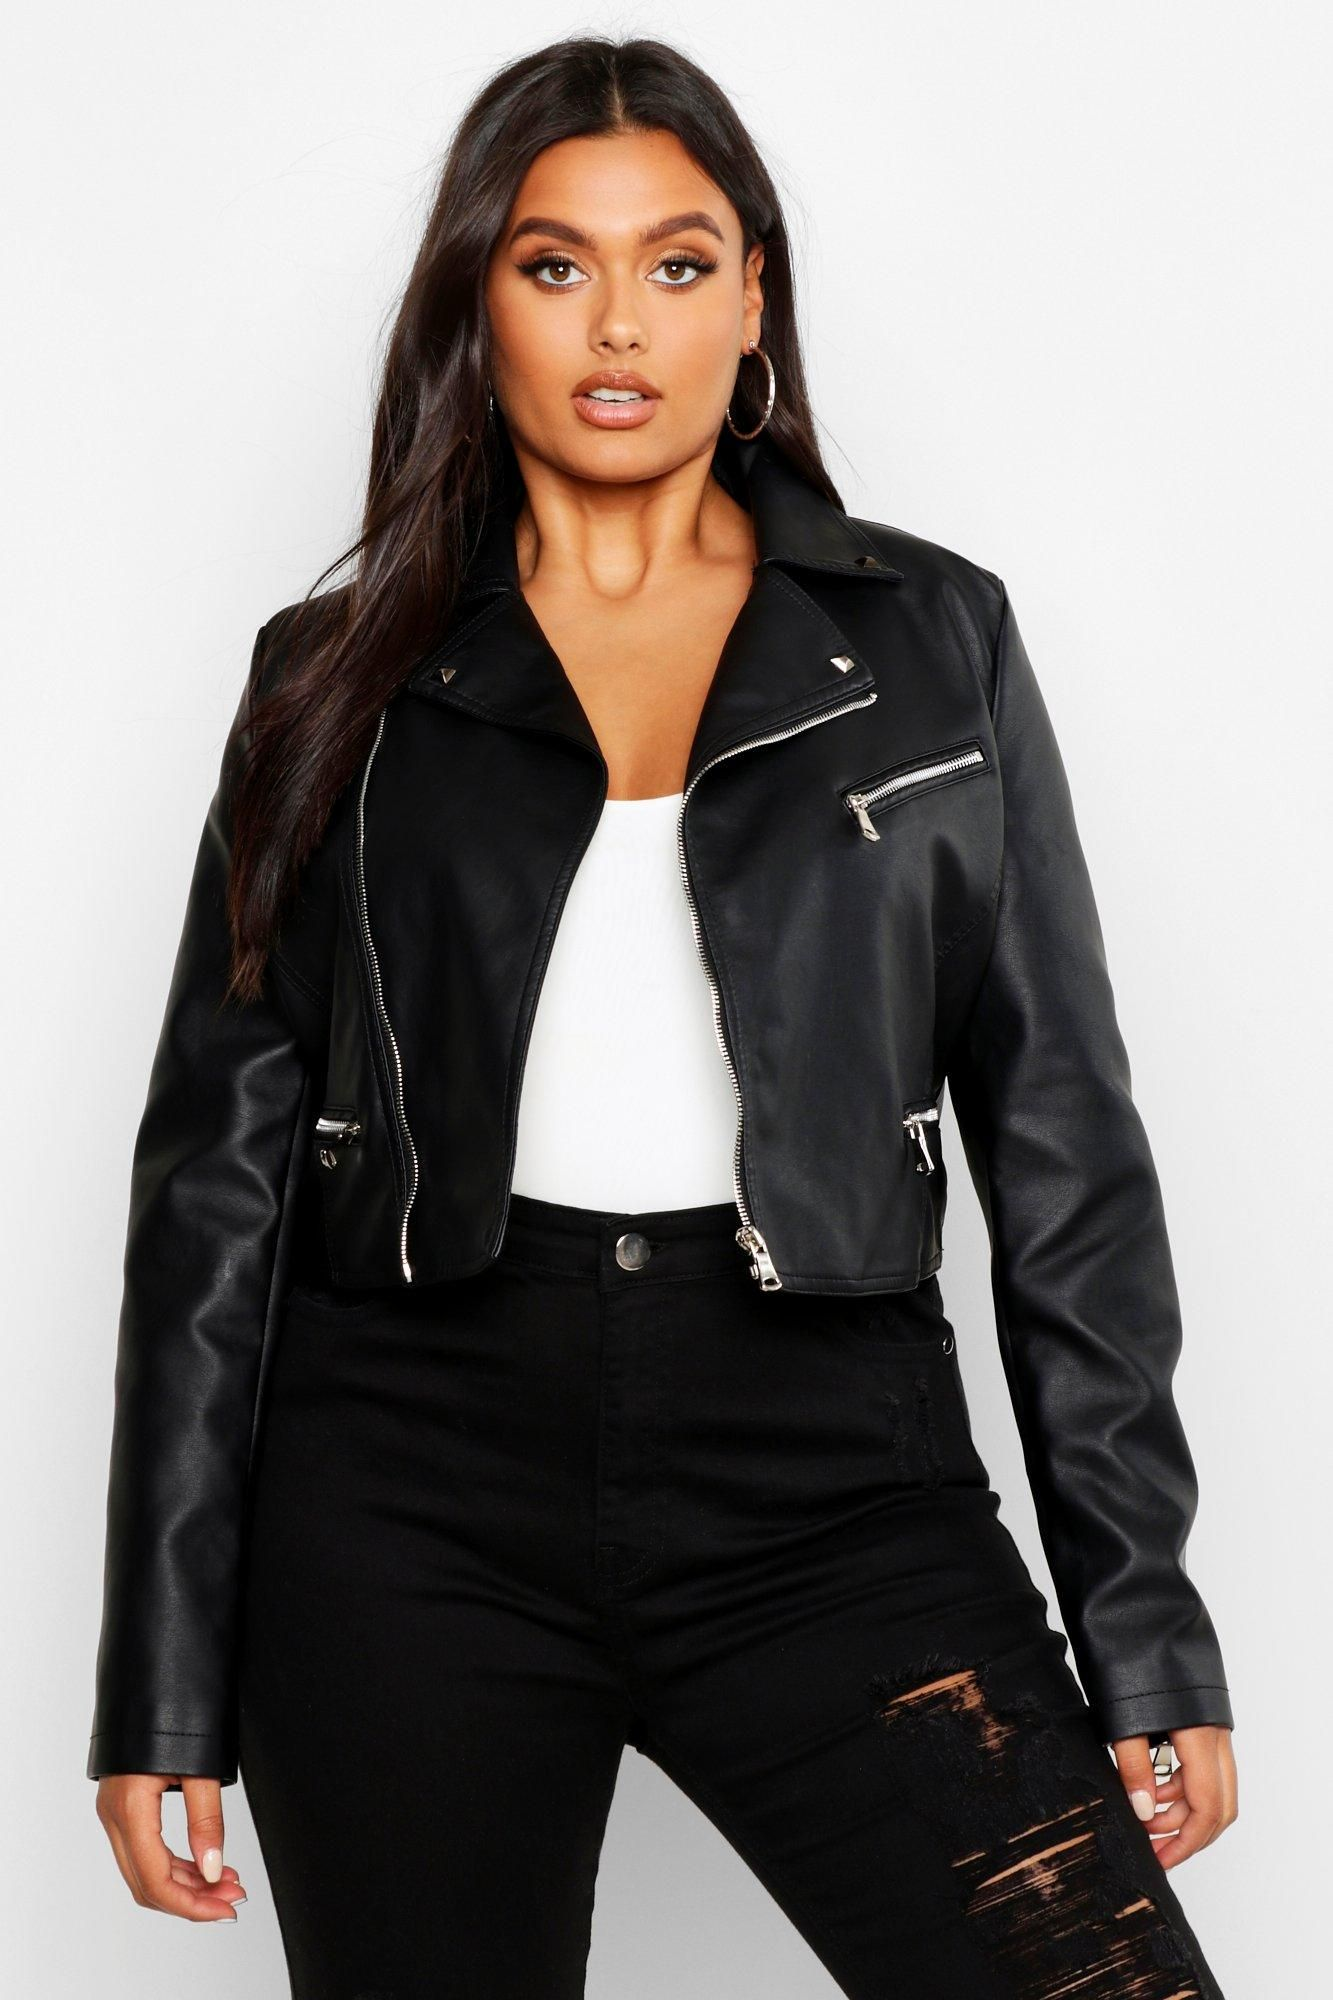 Plus Faux Leather Stud Collar Cropped Moto Jacket Boohoo In 2021 Cropped Biker Jacket Cropped Moto Jacket Cropped Leather Jacket [ 2000 x 1333 Pixel ]